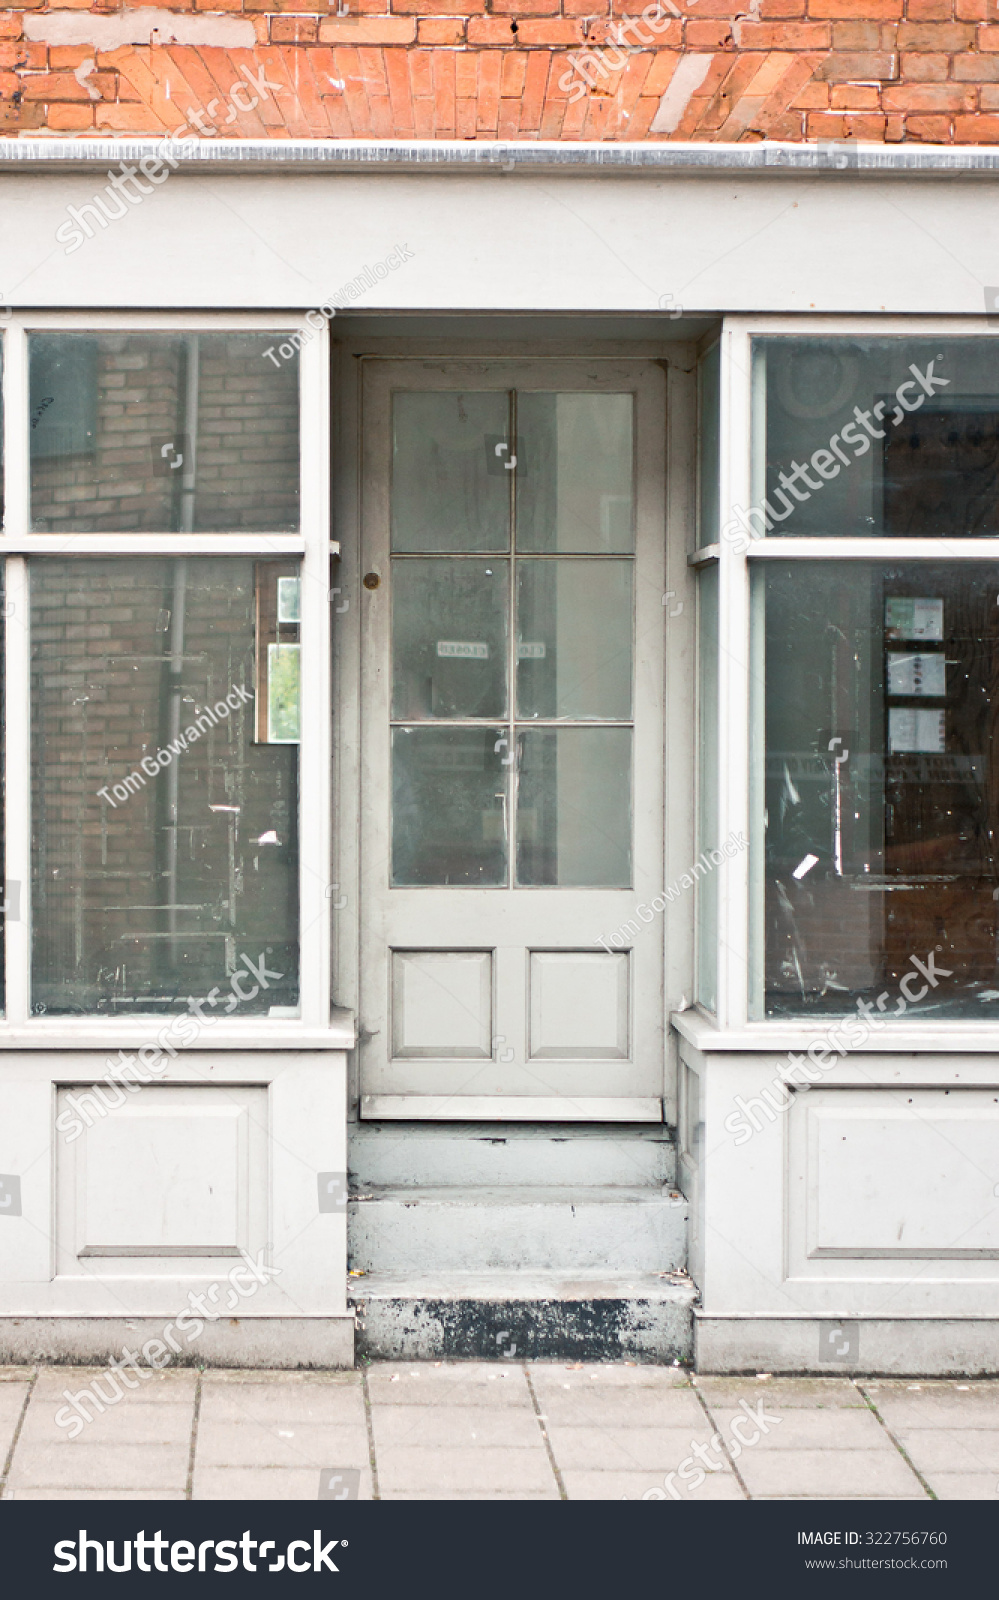 An Empty Store With Glass Windows And Door In A Uk Town Ez Canvas